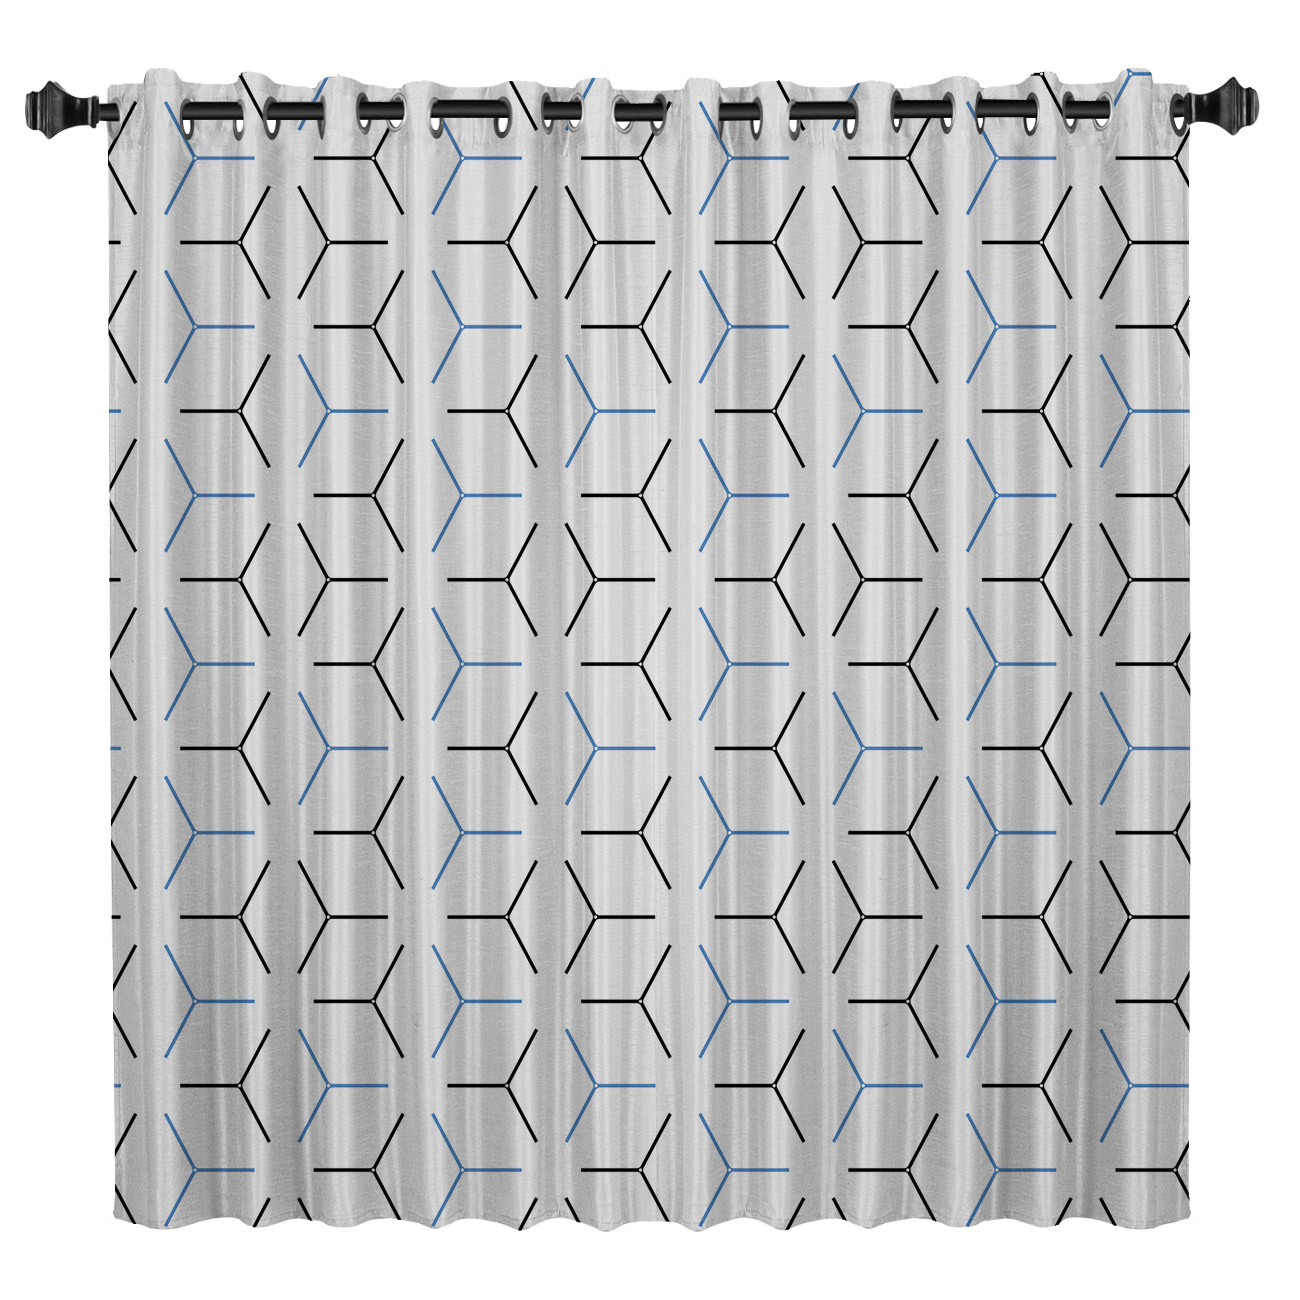 Geometric Lines Room Curtains Large Window Curtain Lights Living Room Blackout Kitchen Outdoor Indoor Fabric Decor Kids Curtain